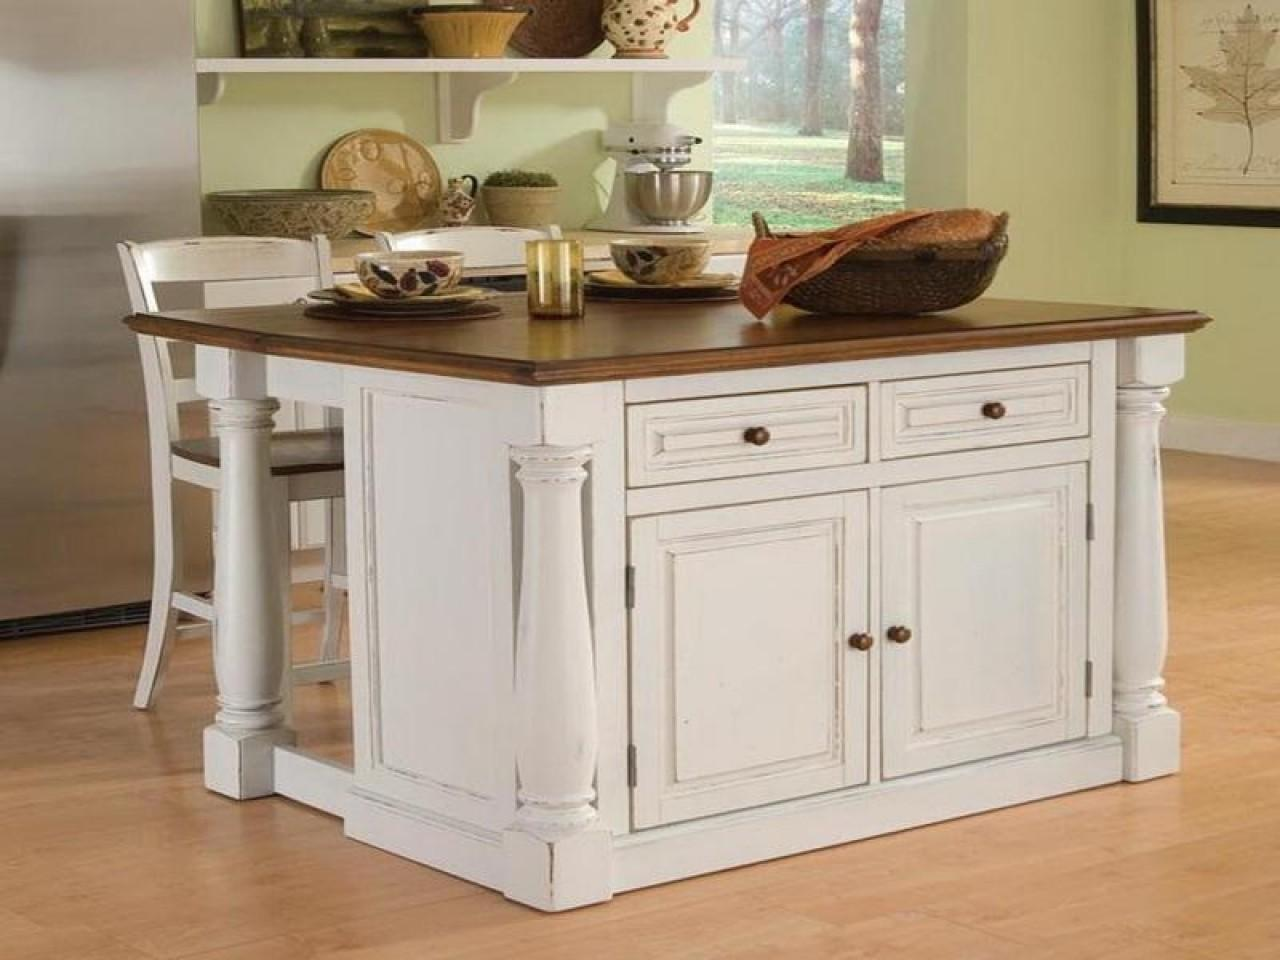 Kitchen Breakfast Bar Islands Wheels Portable